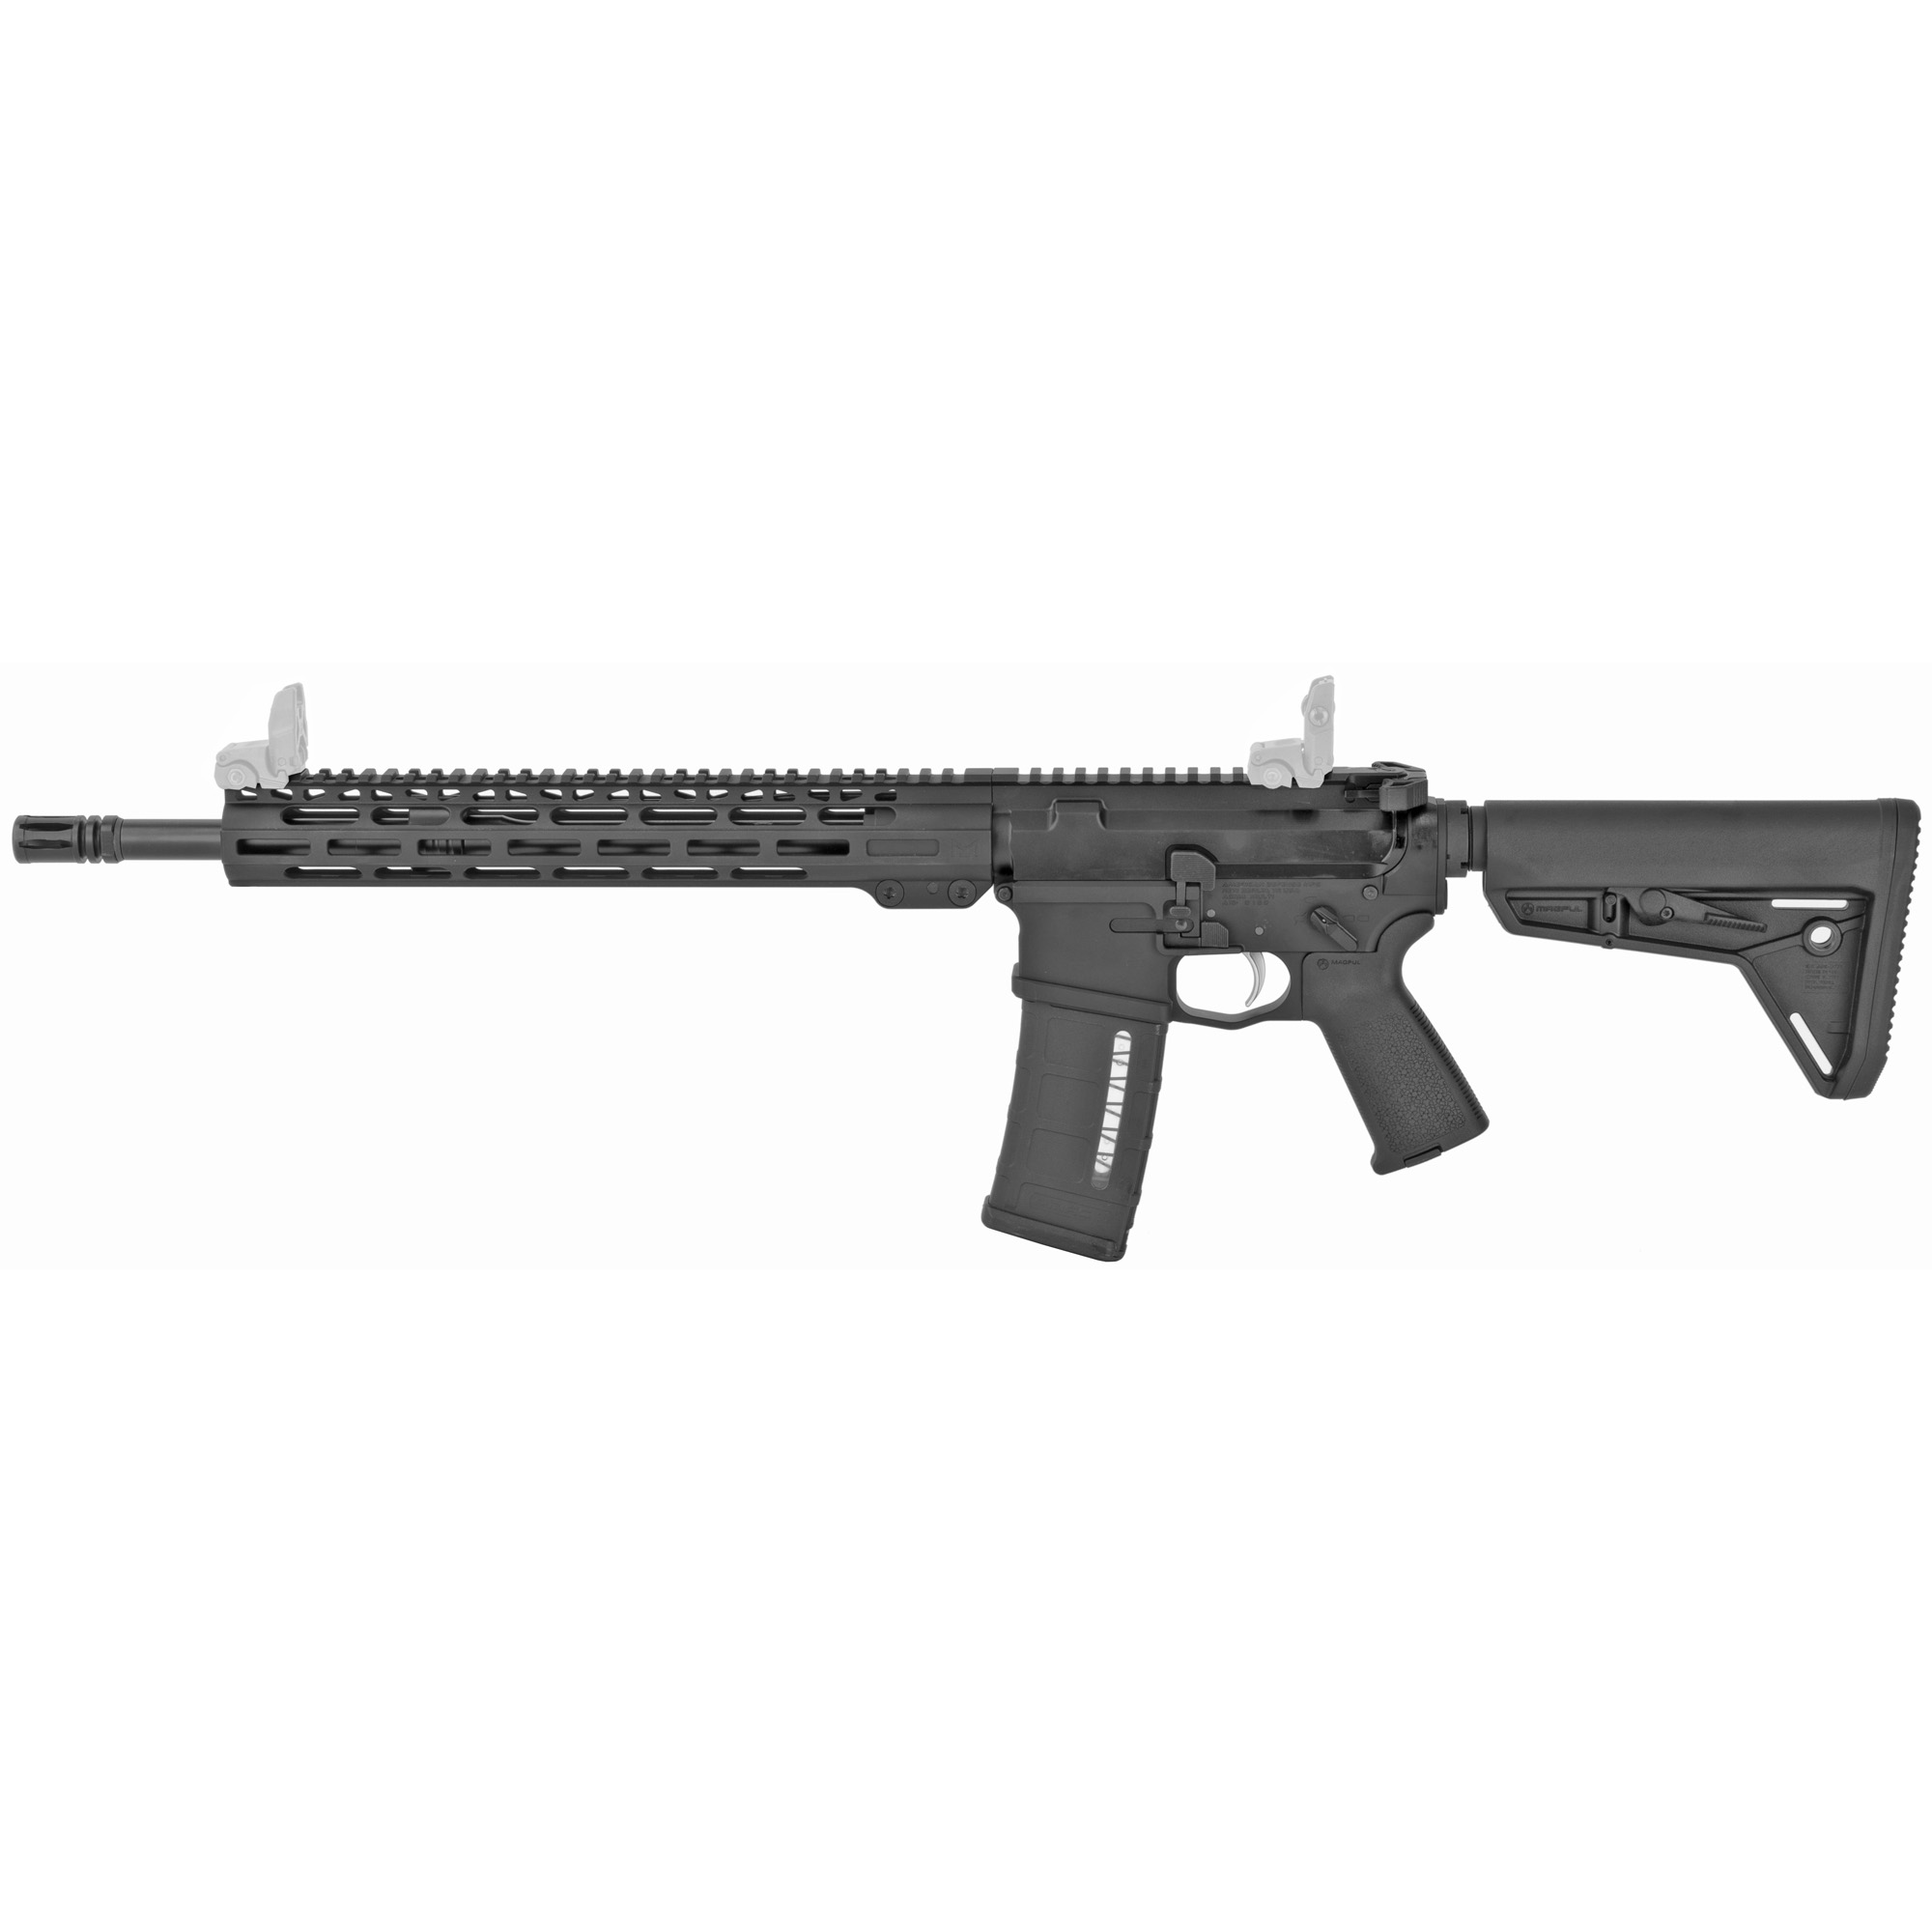 "Am Def Uic Rifle Mlok 16"" Blk 5.56"